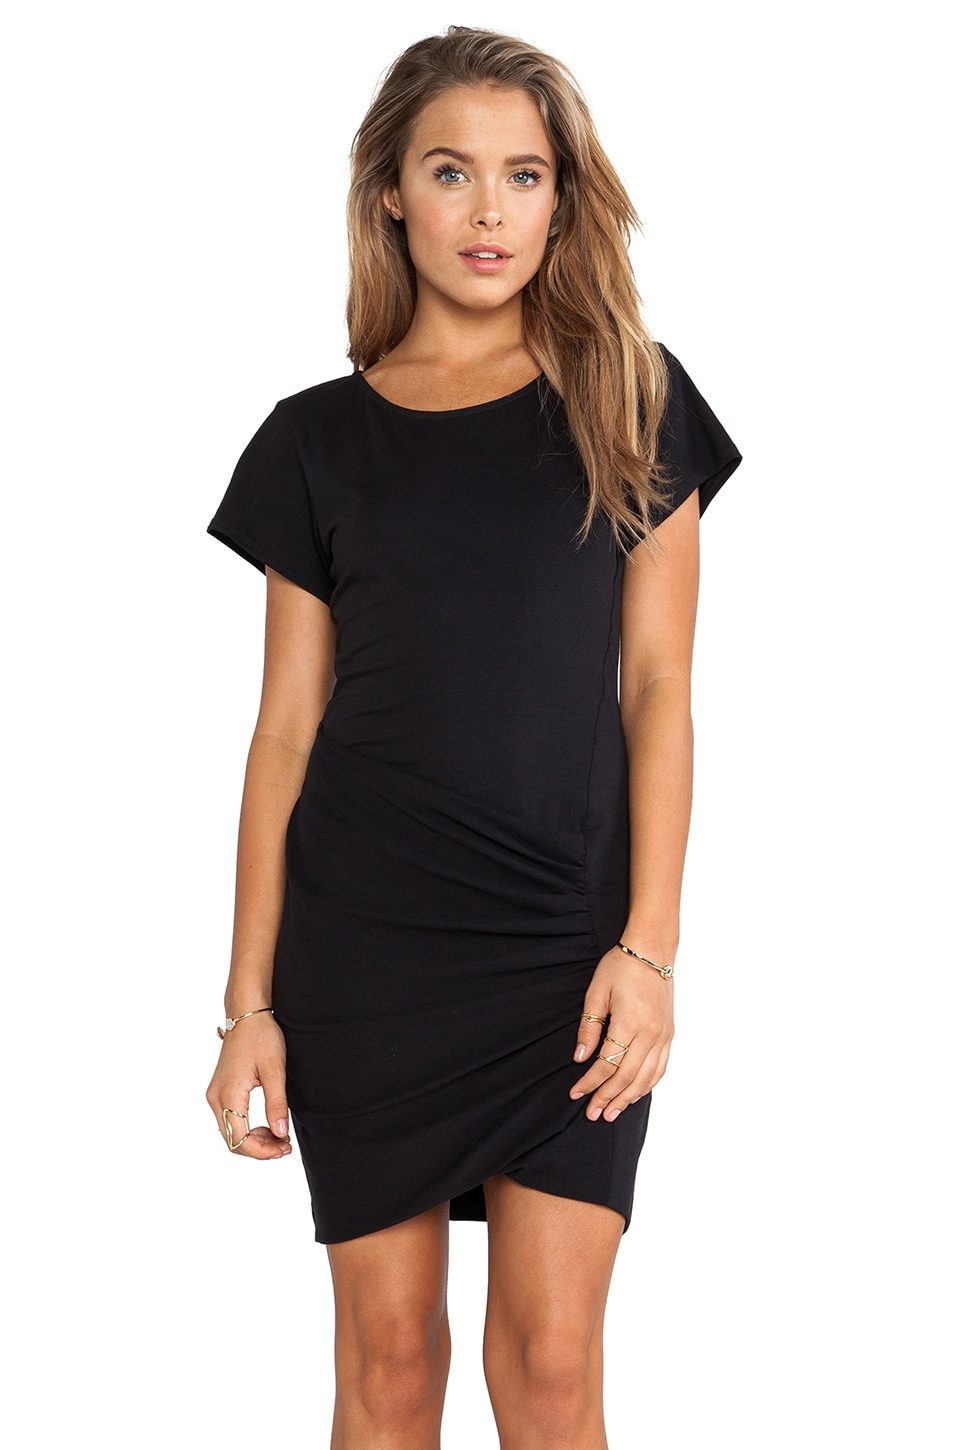 Theory Sunly Dress in Black